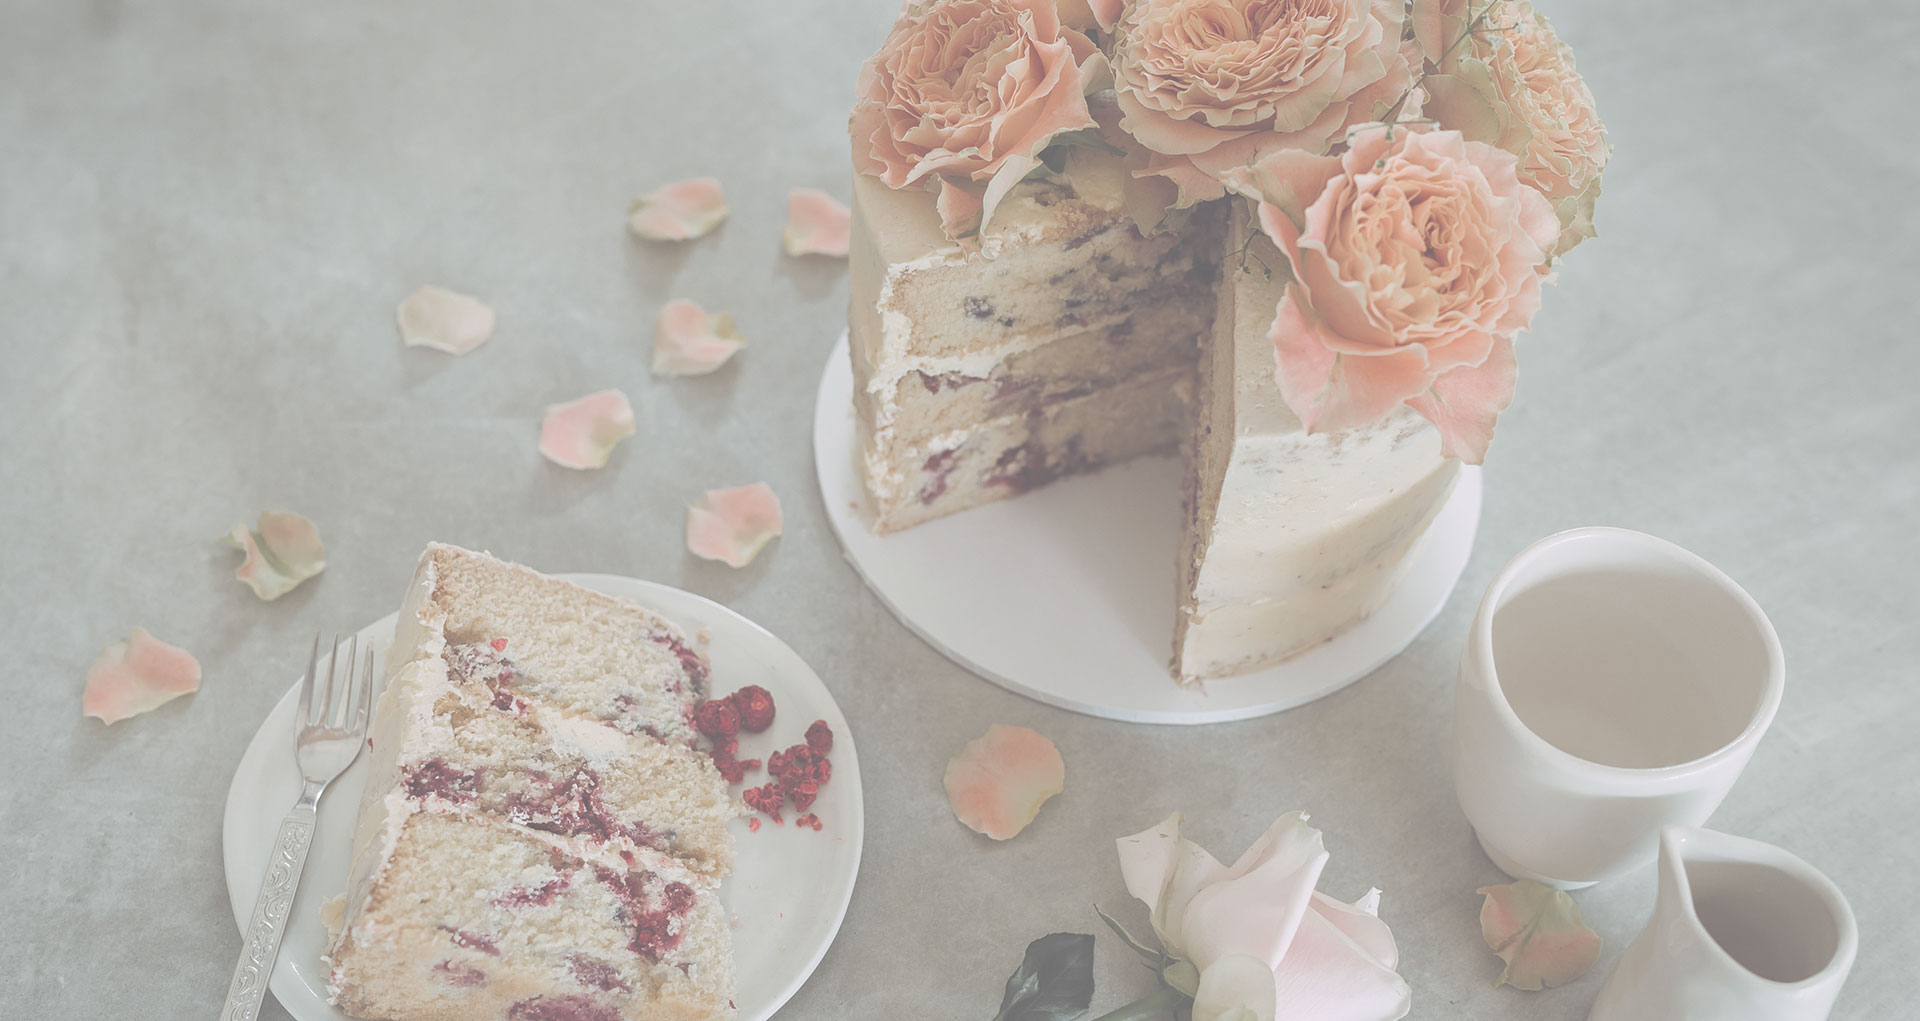 ROSE CRAFTED CAKES MATAKANA